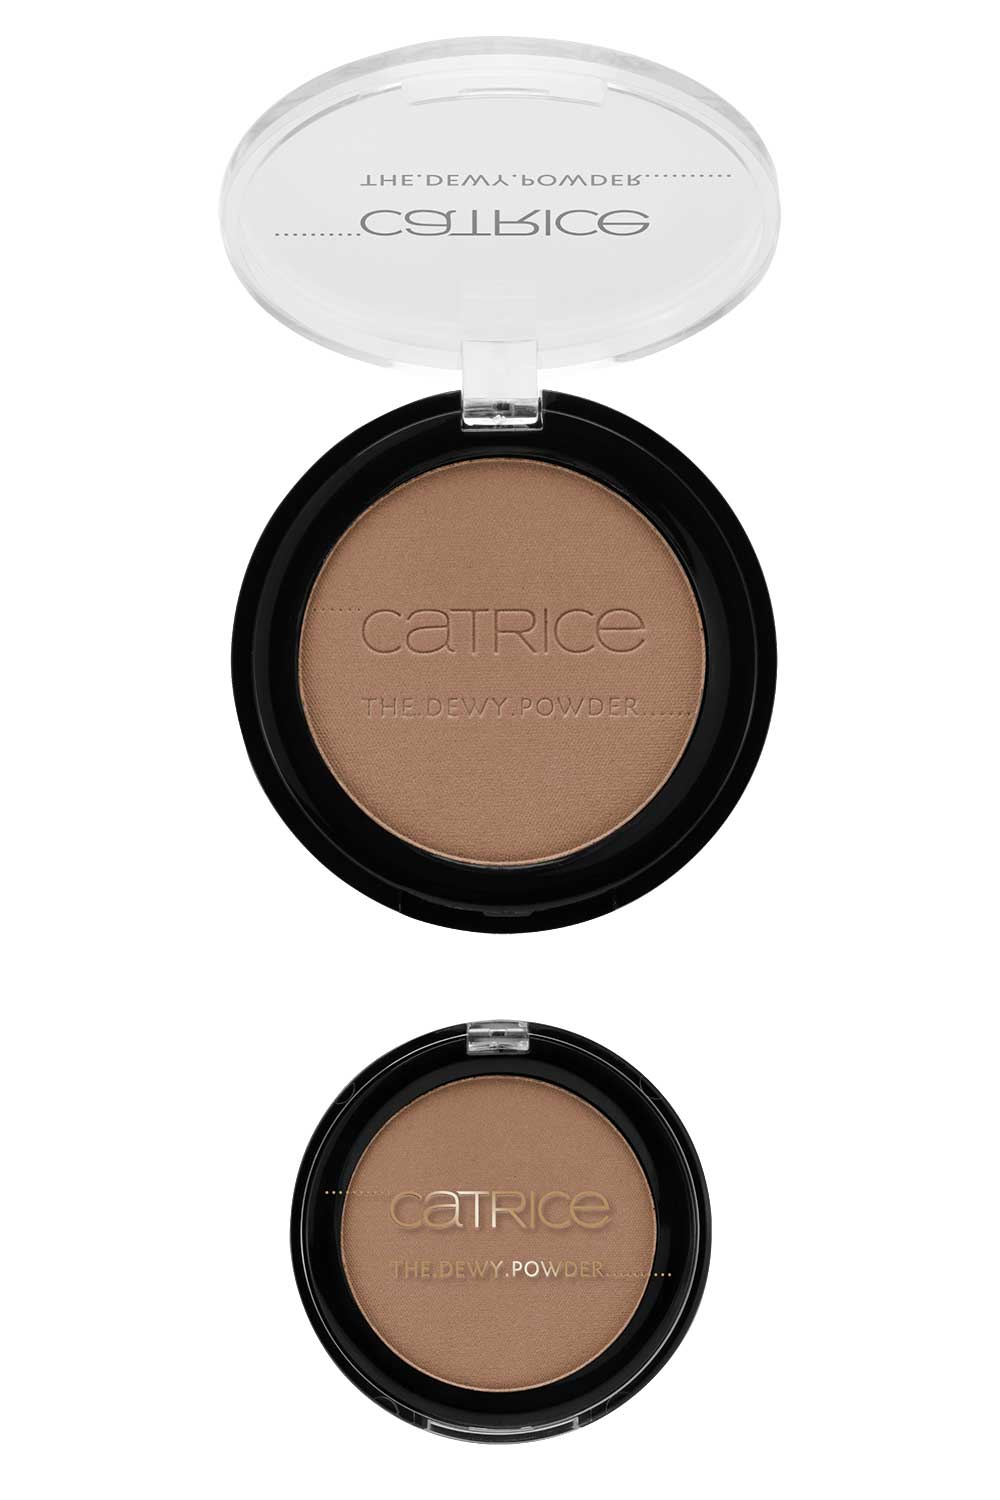 Catrice The Dewy Routine illuminating compact bronze